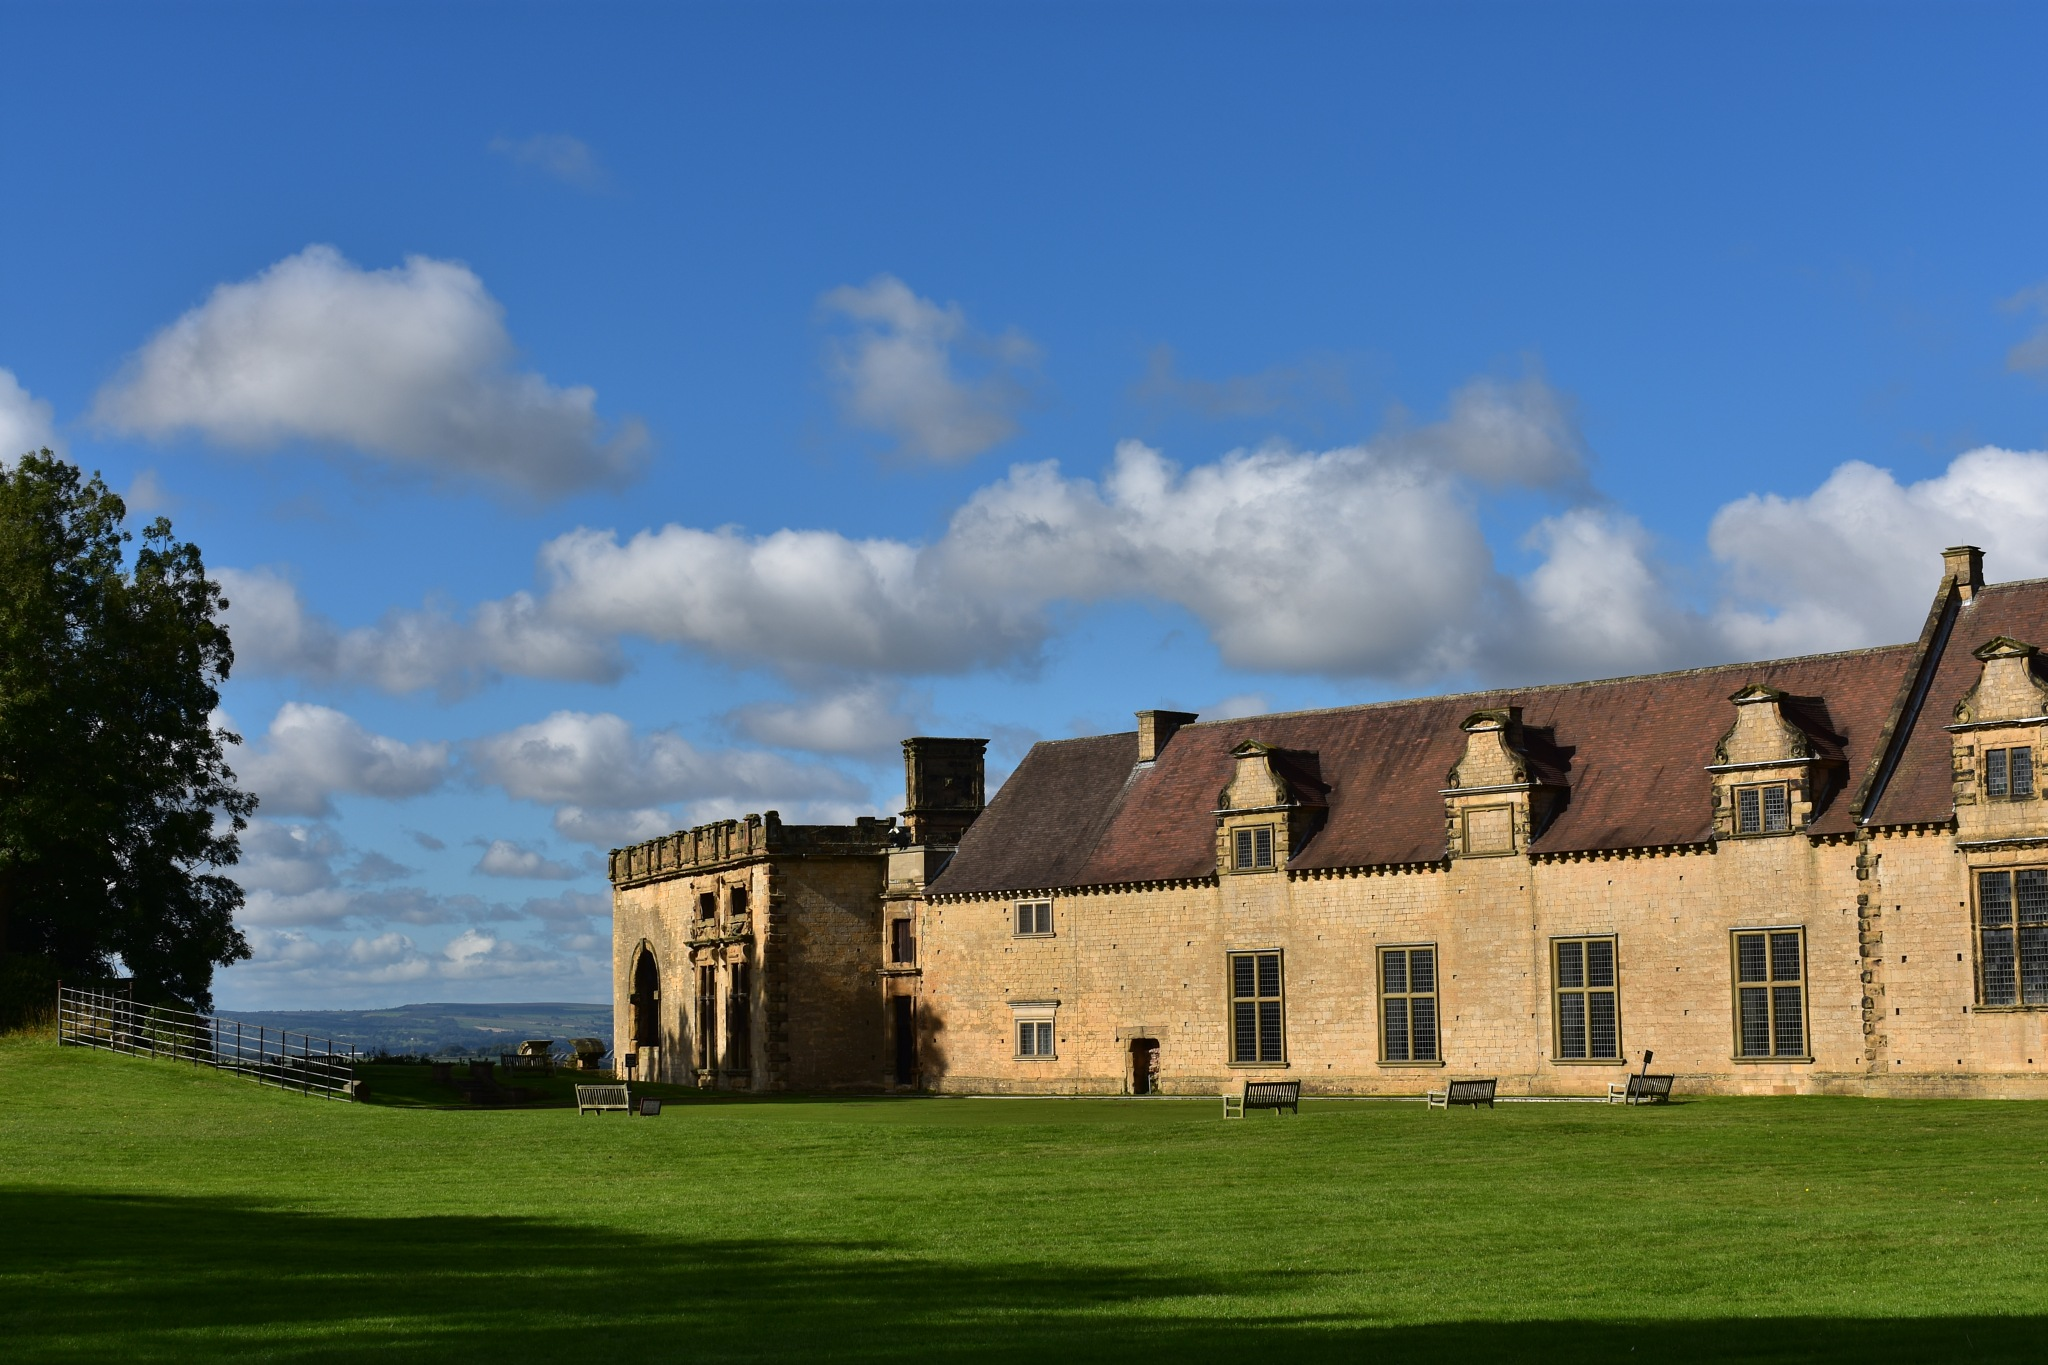 Bolsover castle by declan delaney